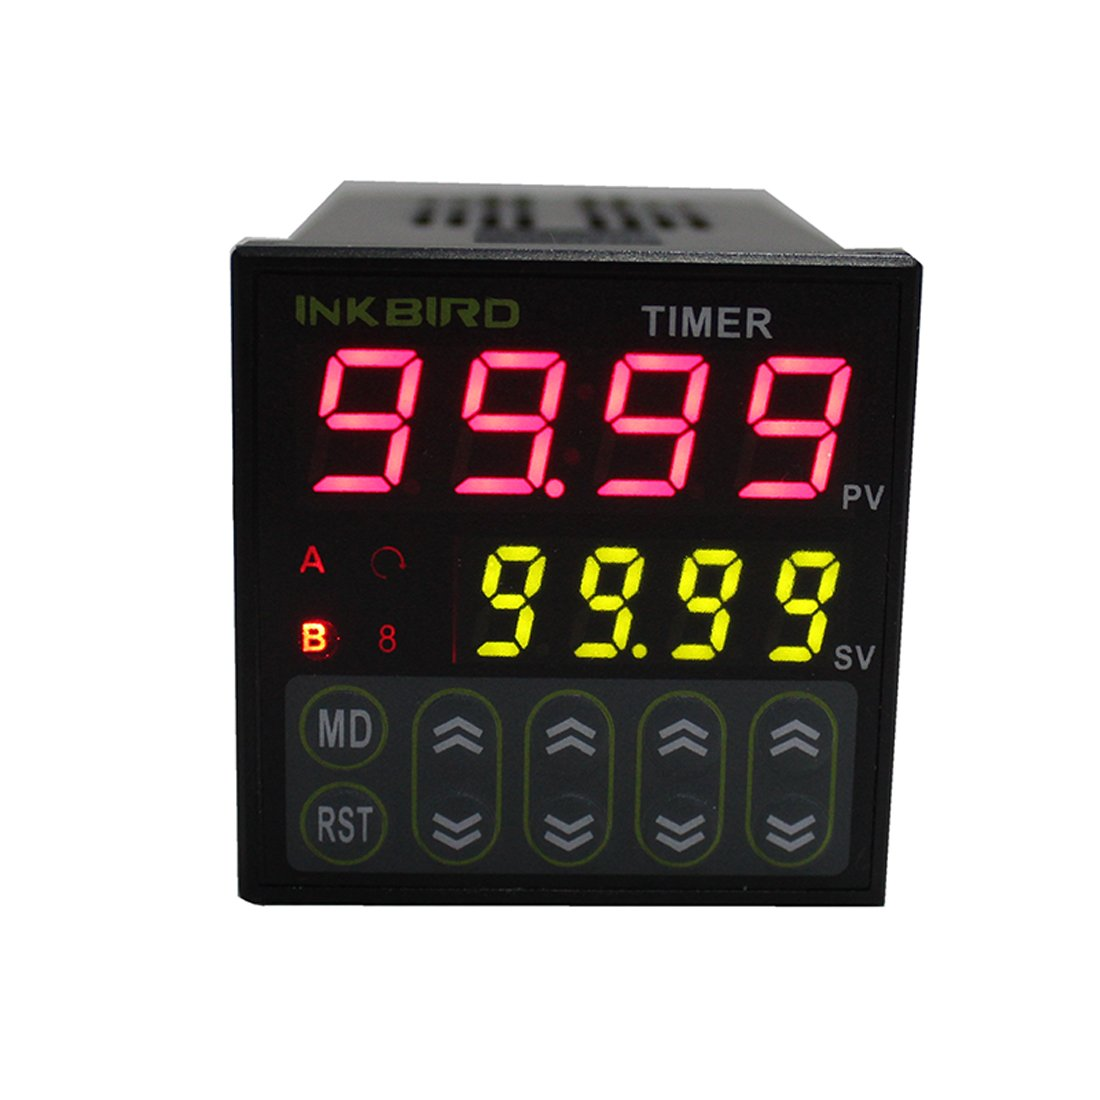 Inkbird Digital Tact Switch Preset Scale Counter Register Twin Timer Relay Time Delay (IDT-E2RH Timer)